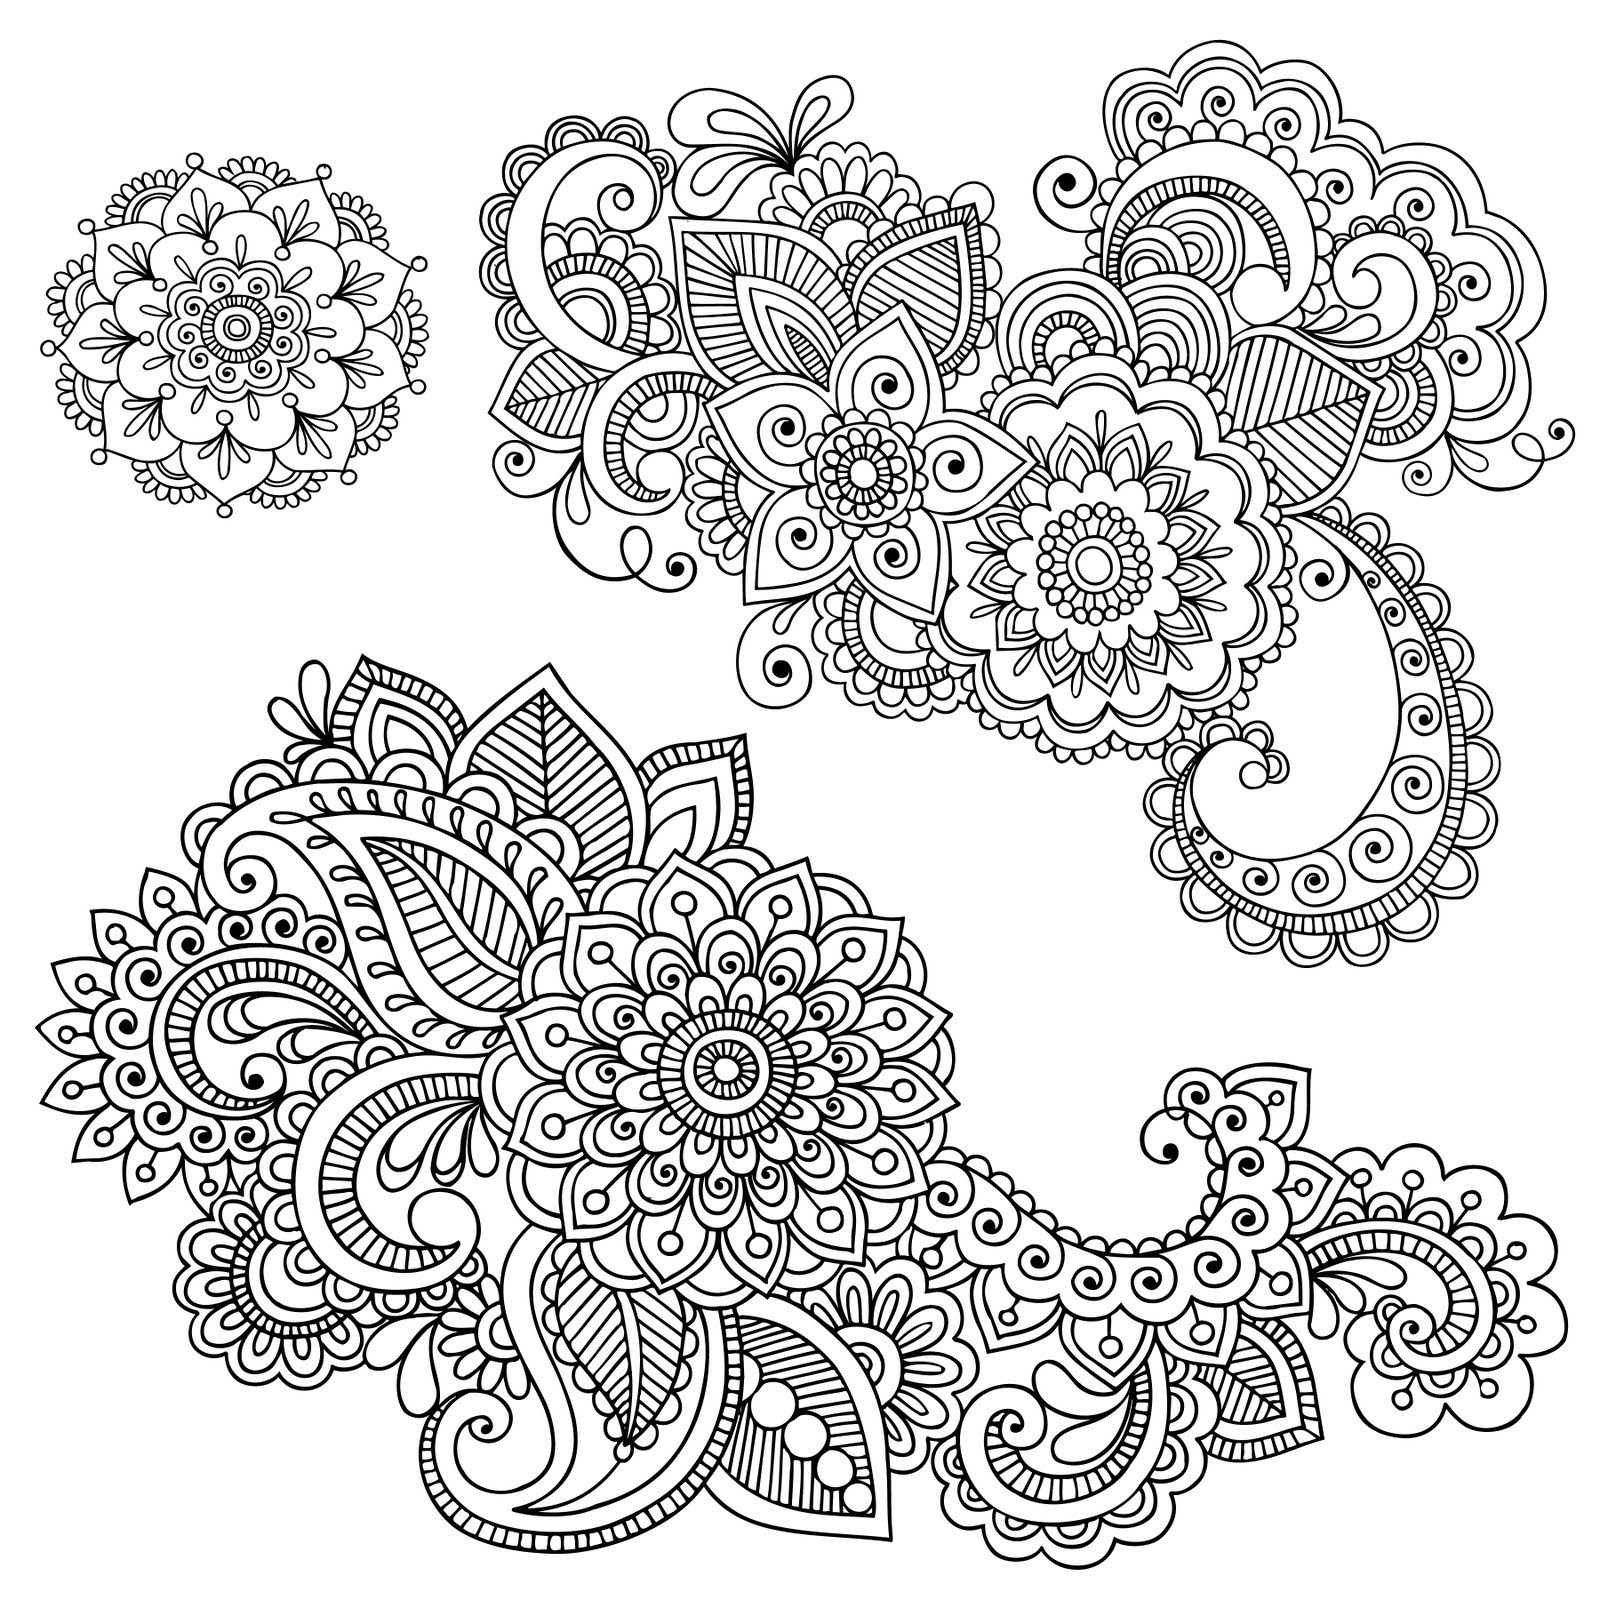 1600x1600 Mehndi Coloring Pages Luxury Mehndi Coloring Pages Wallpapers